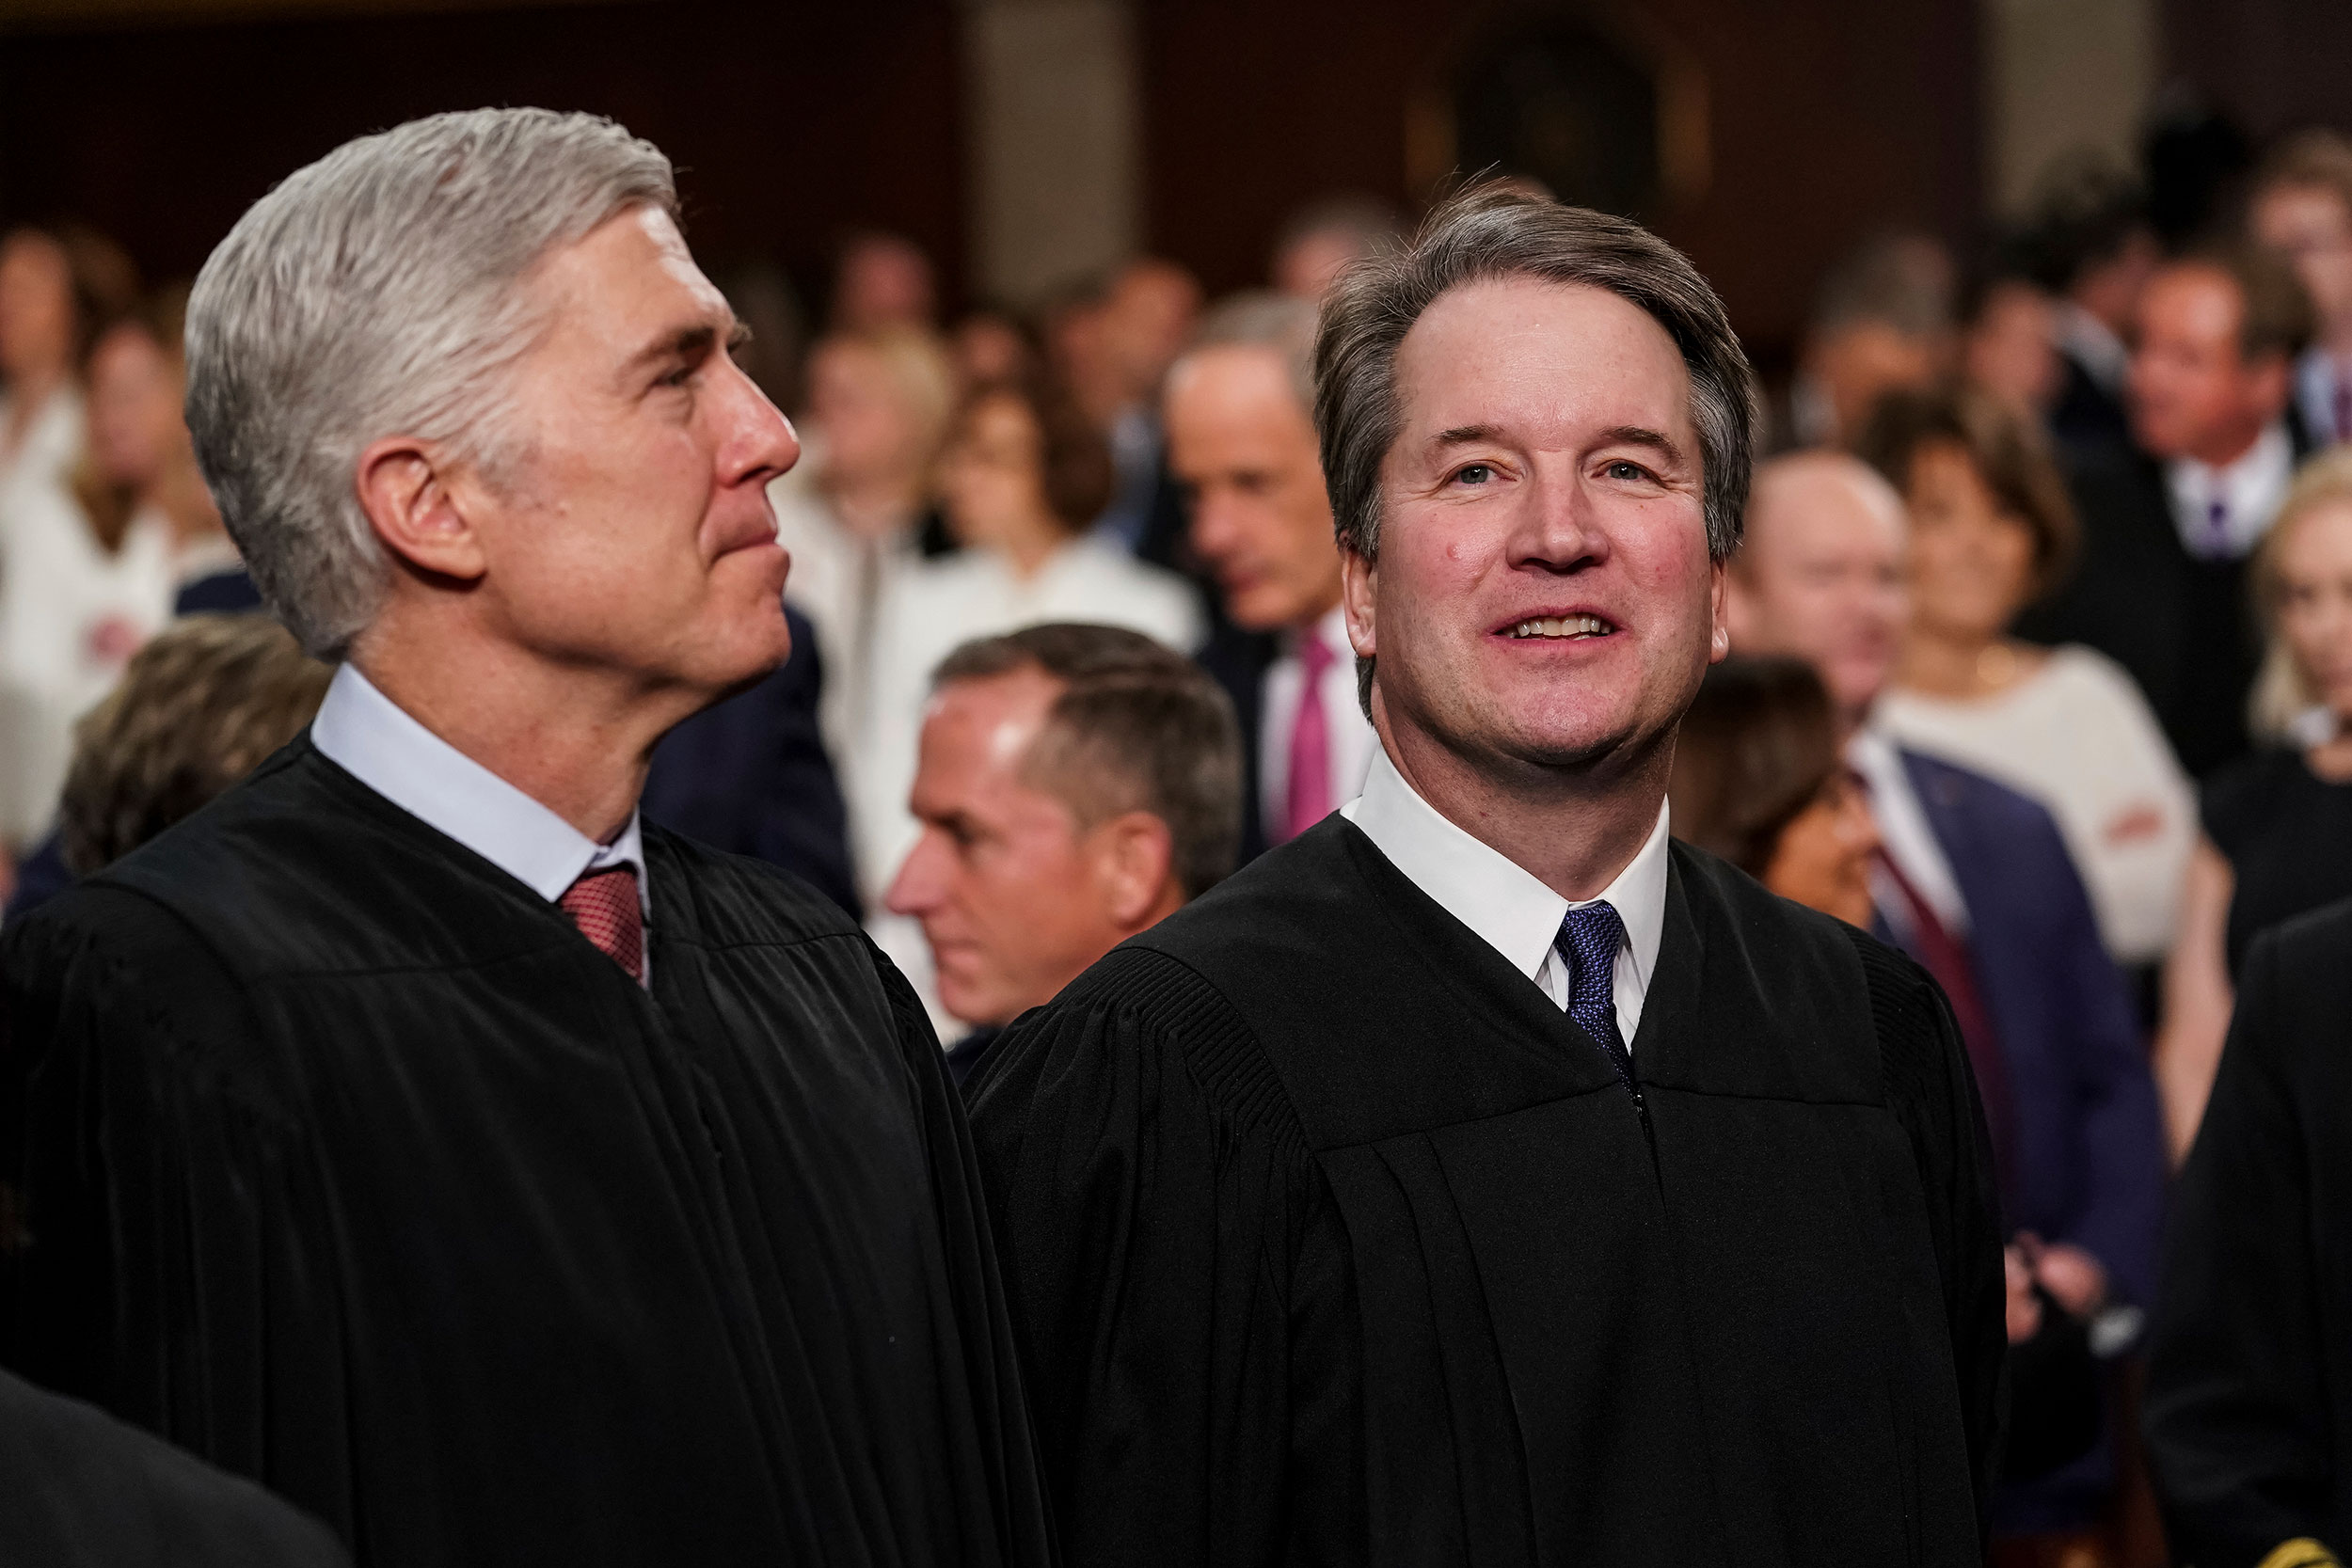 From left, Supreme Court Justices Neil Gorsuch and Brett Kavanaugh stand together at President Trump's State of the Union address on February 5, 2019.